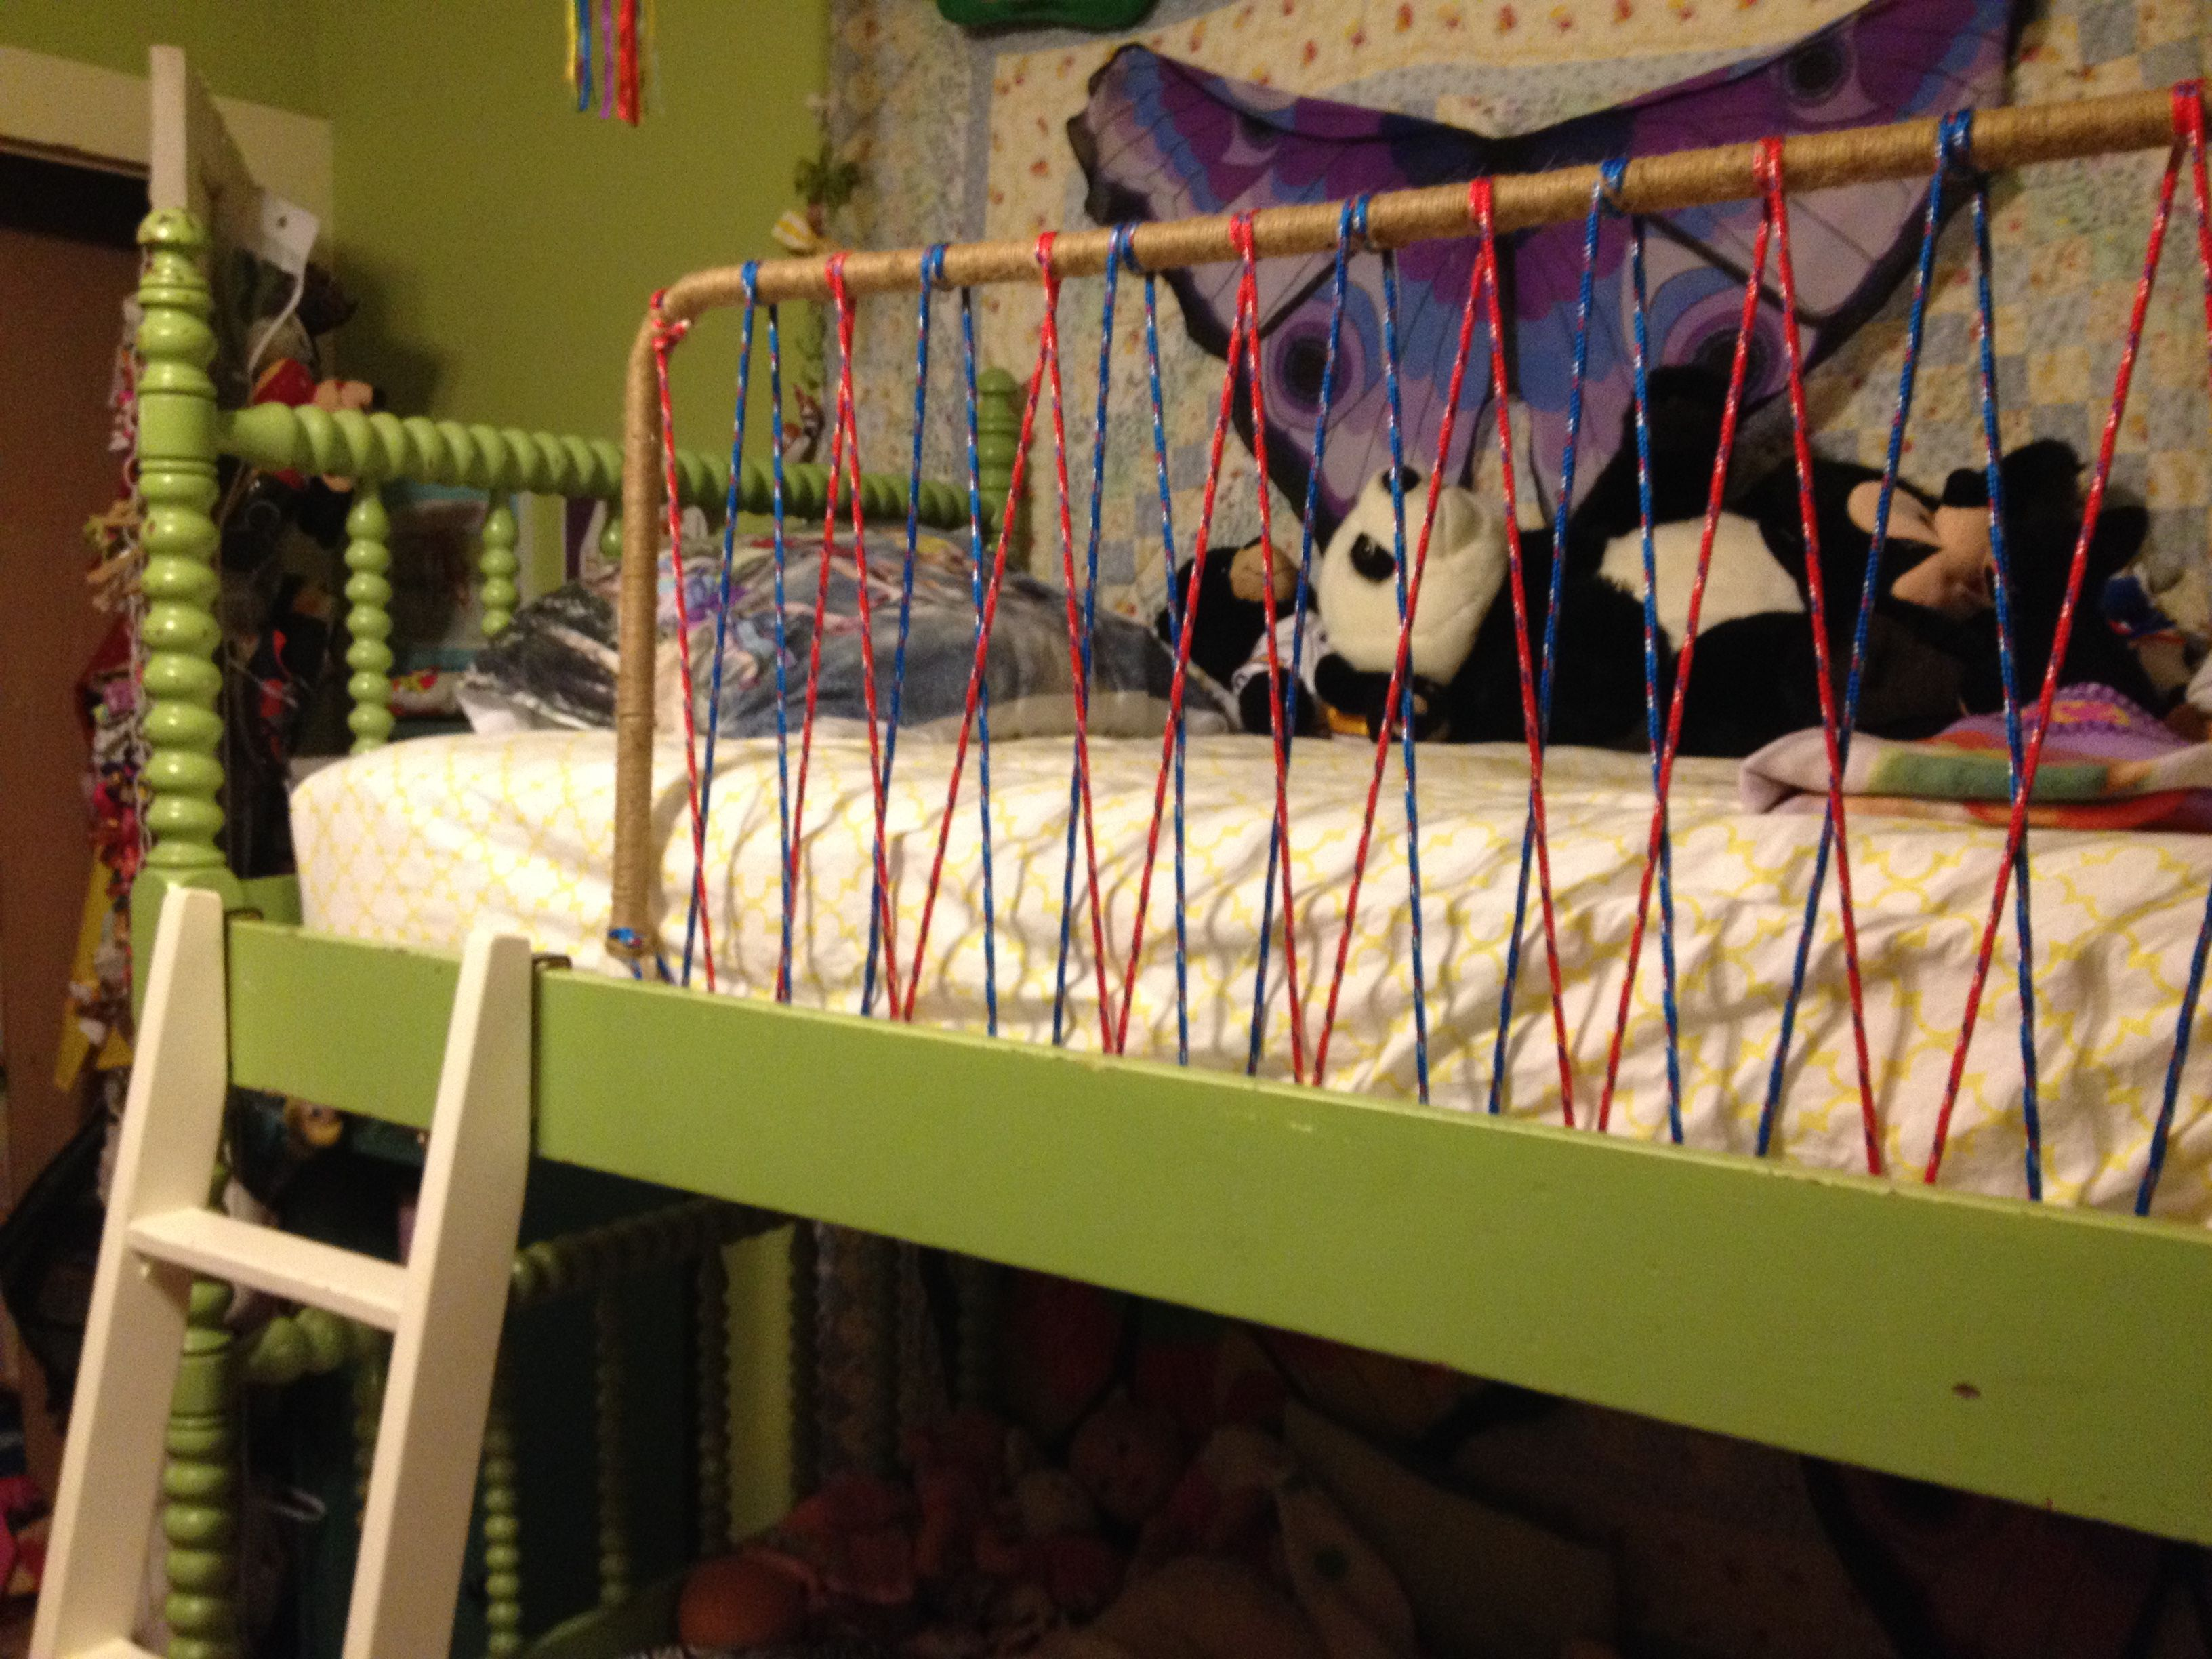 Bunk Bed Railing Diy Made From Rope And Old Toddler Safety Rail